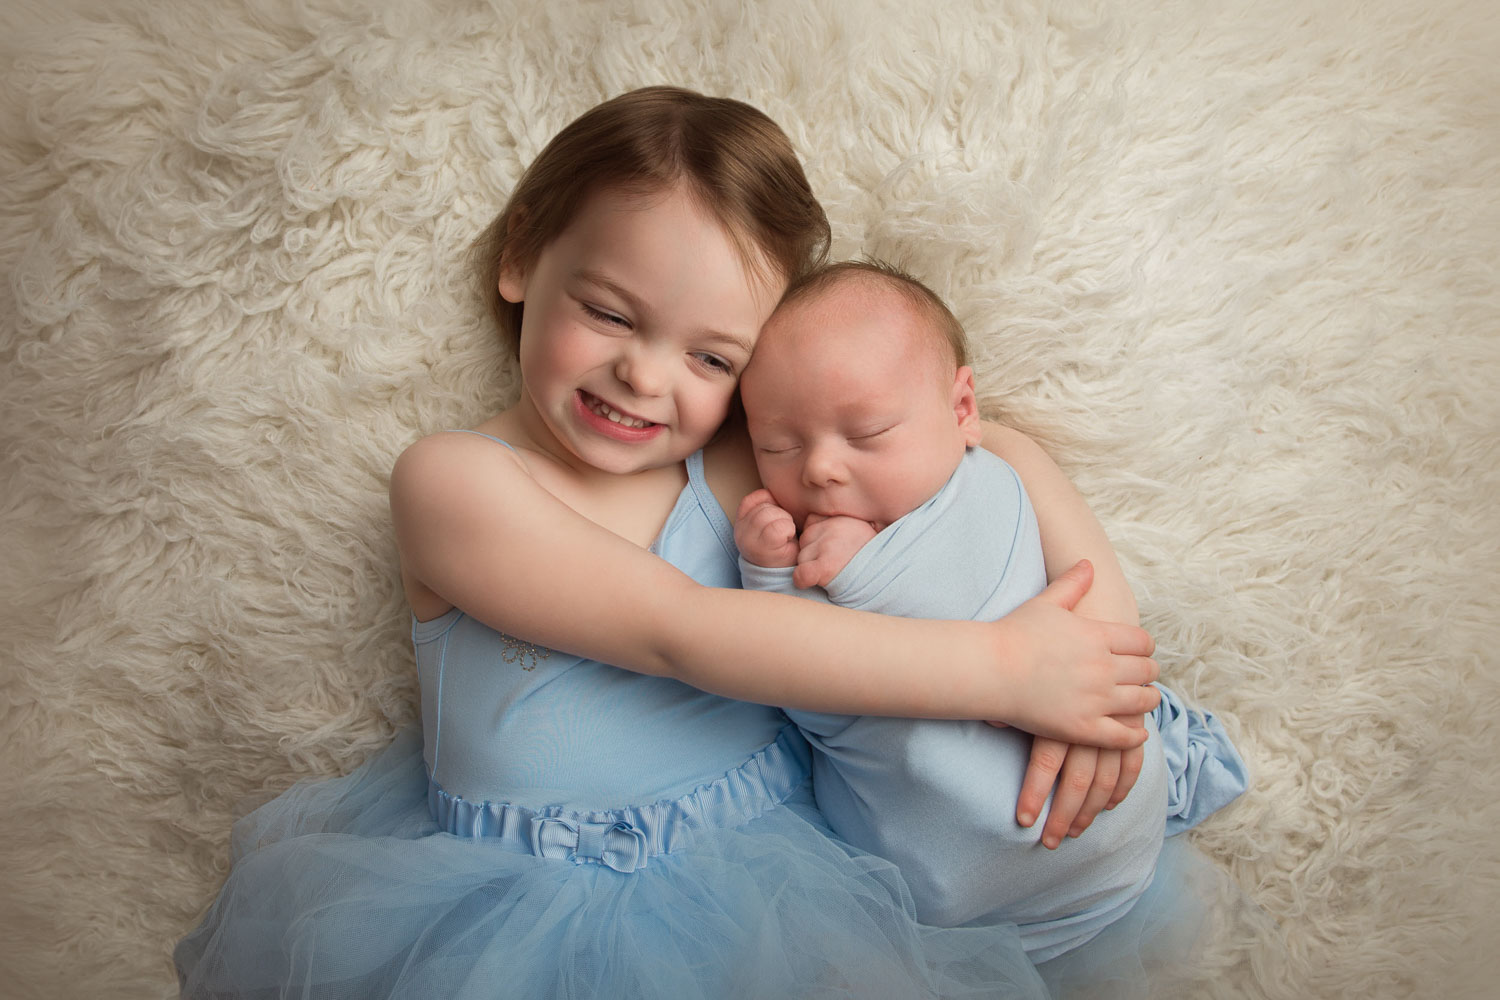 Photograph of newborn baby and sister by auckland newborn photographer siobhan kelly photography